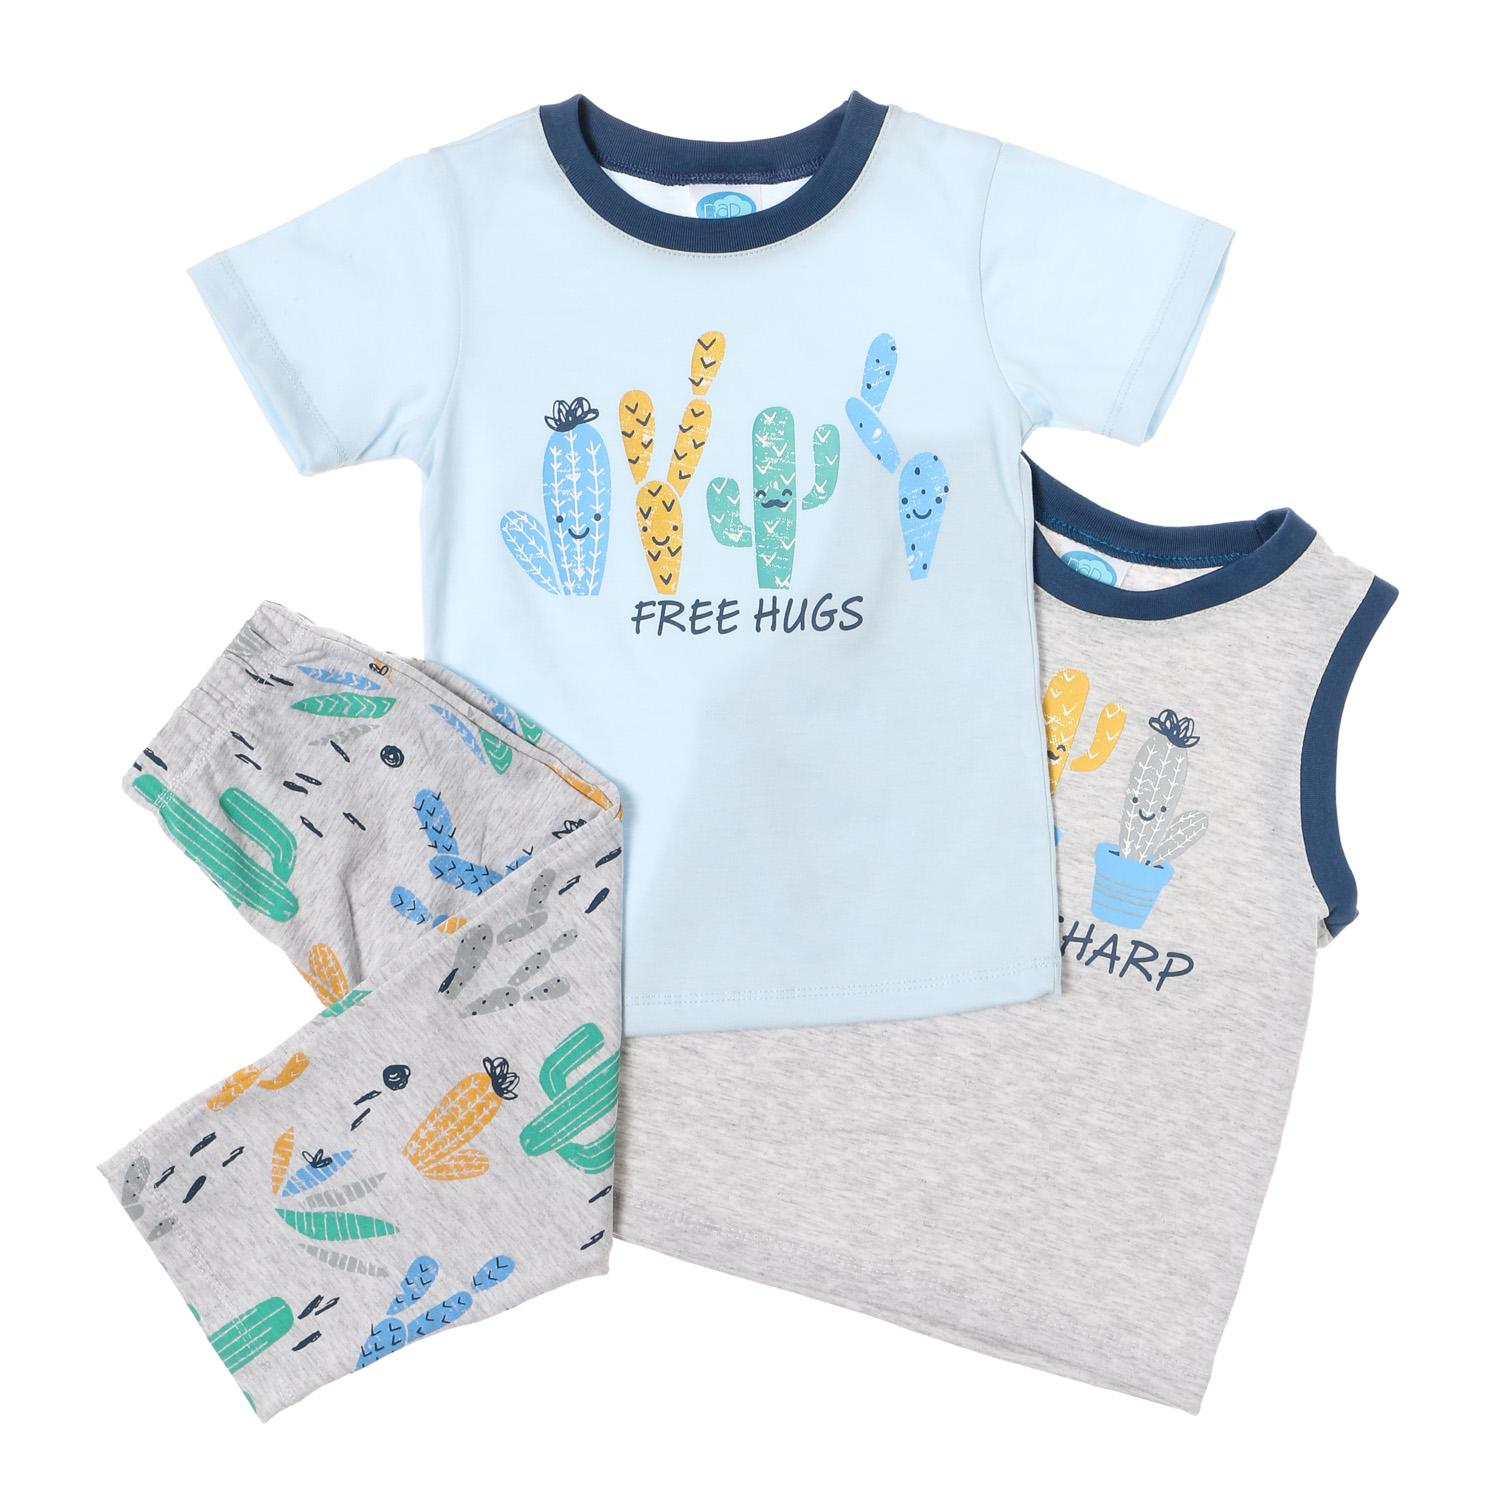 8d19c8d53eae Baby Clothes for sale - Baby Clothing Online Deals & Prices in ...